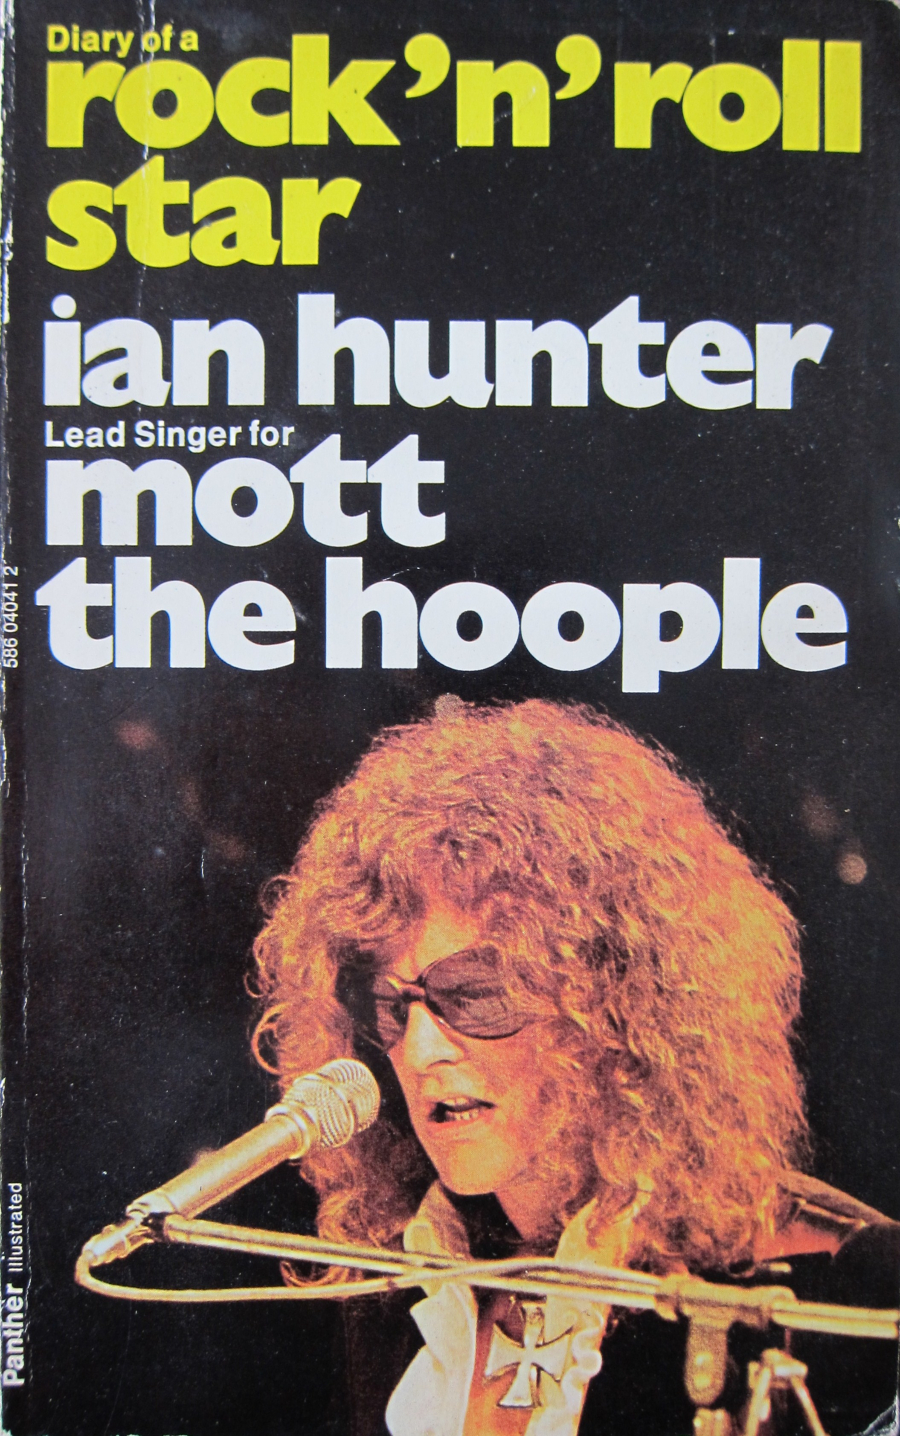 Diário de Ian Hunter, do Mott The Hoople, volta às livrarias